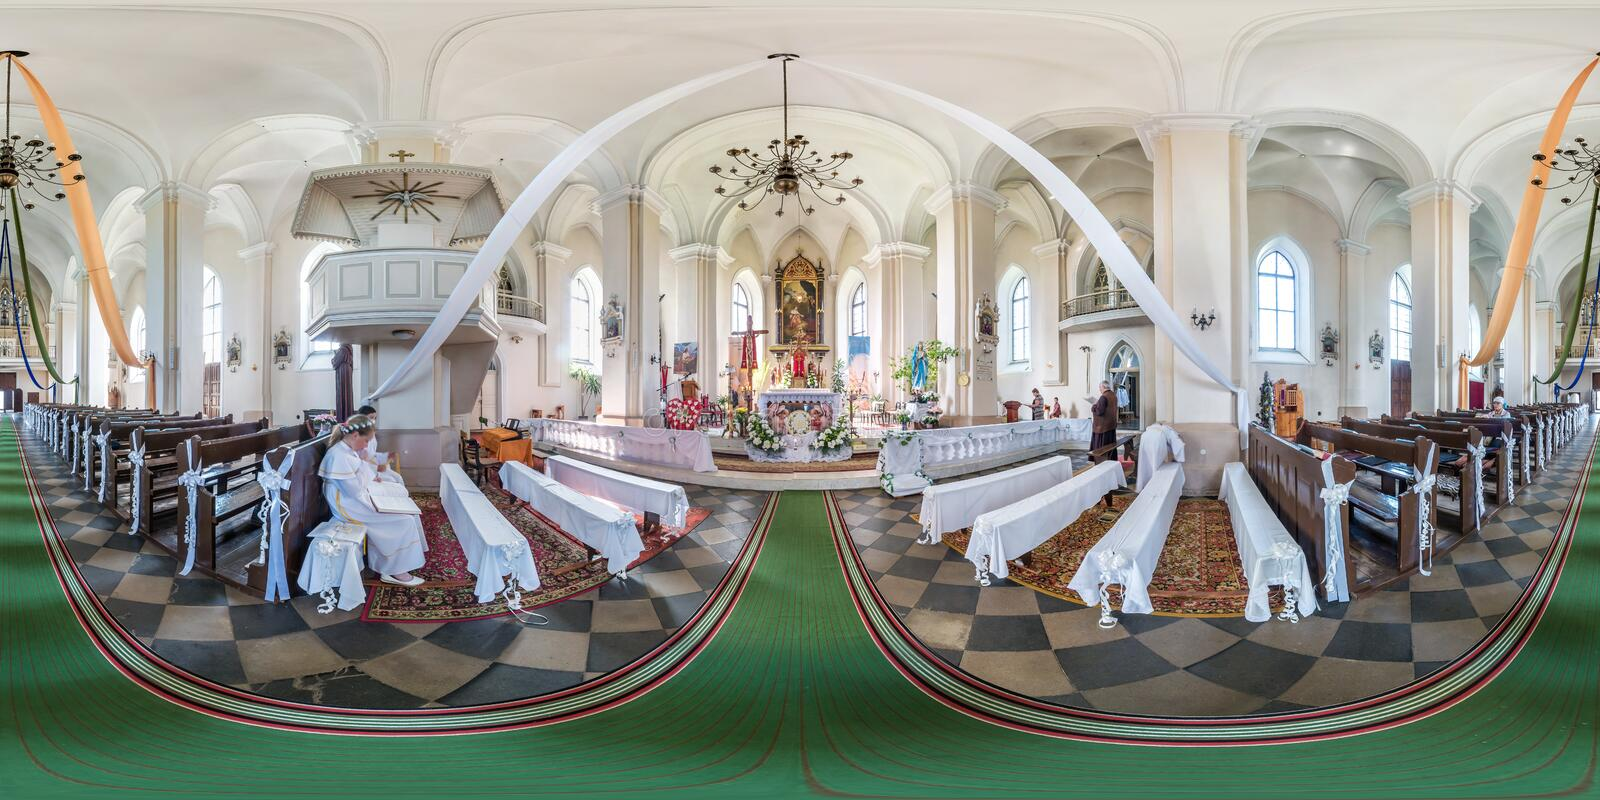 LIDA, BELARUS - JUNE, 2019: full seamless spherical panorama 360 degrees angle view inside of interior gothic catholic church in stock photos